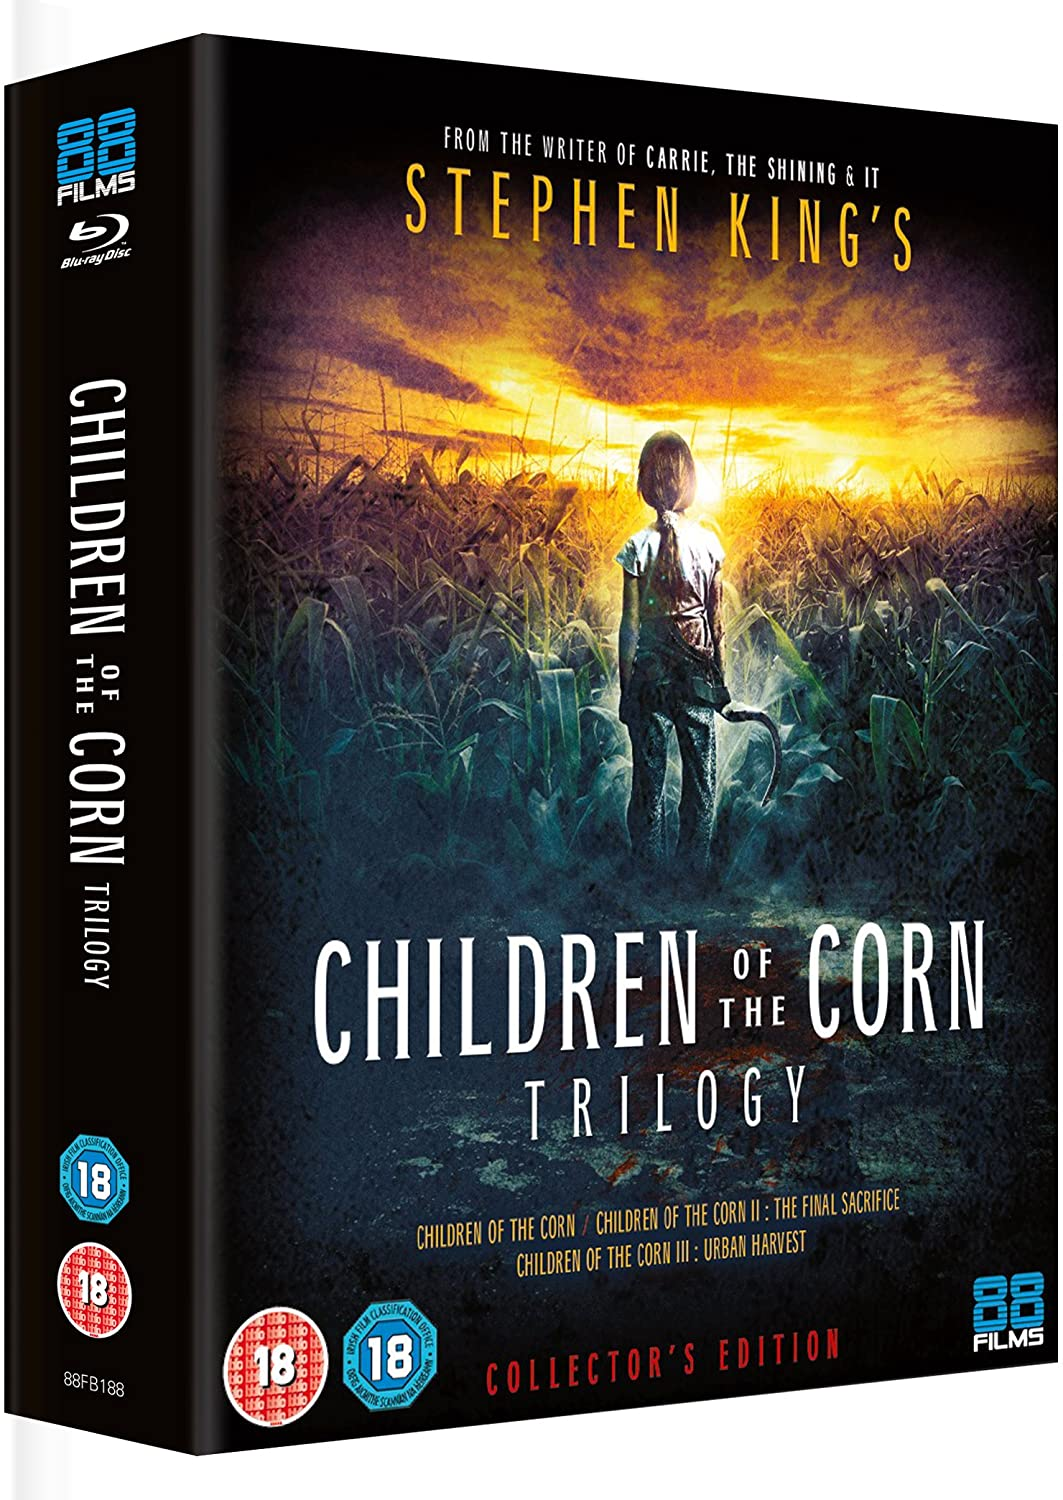 Children of the Corn Trilogy - Collectors Edition Blu-ray ...